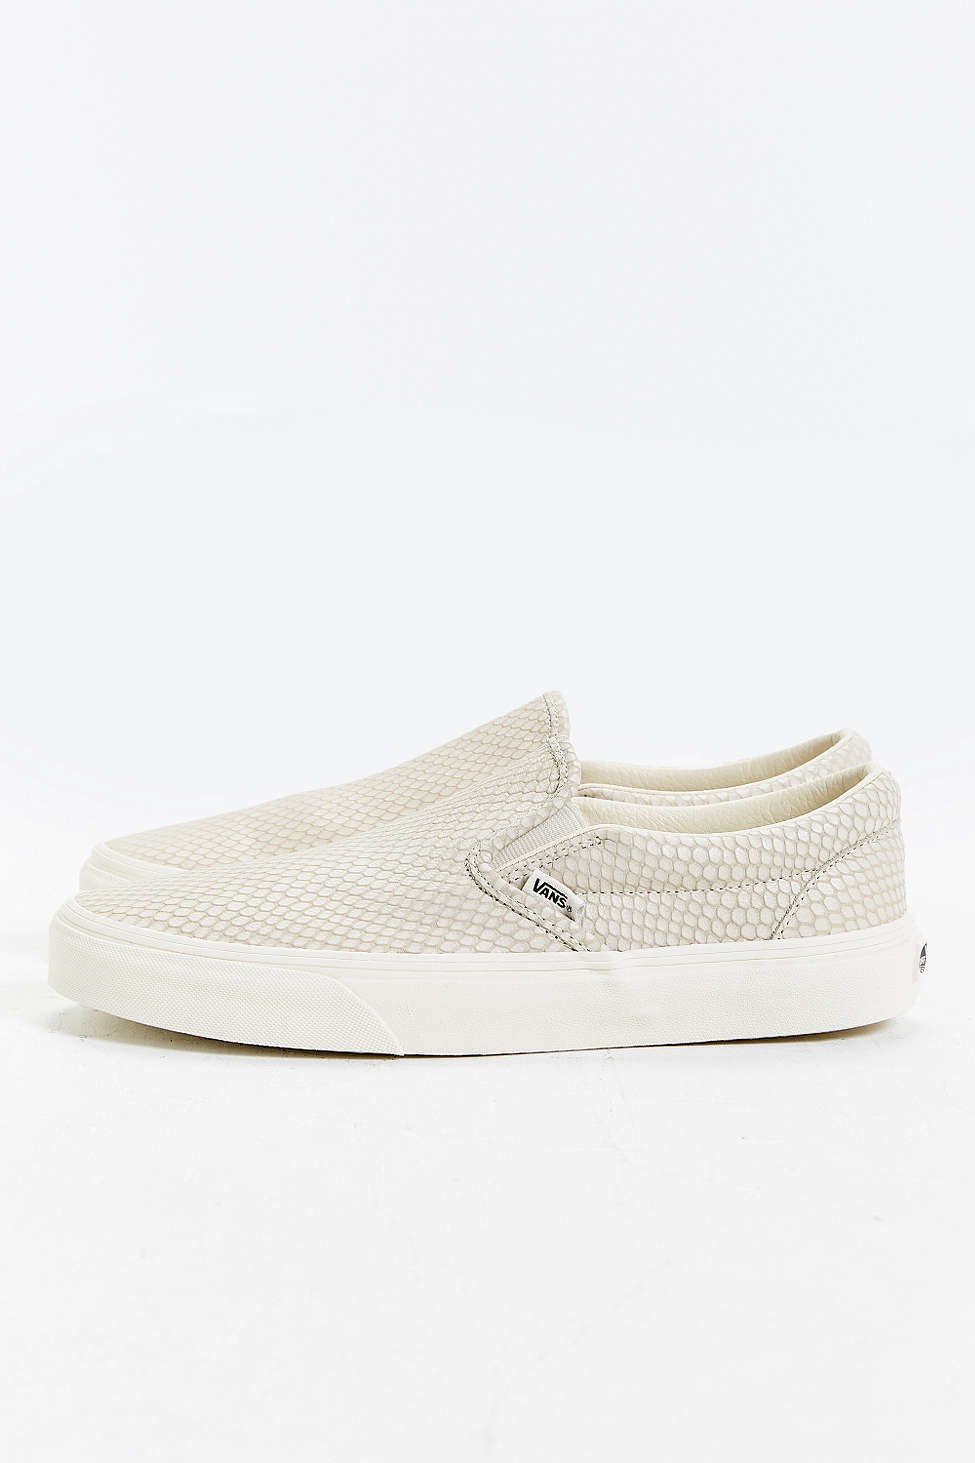 slip on vans leather snake